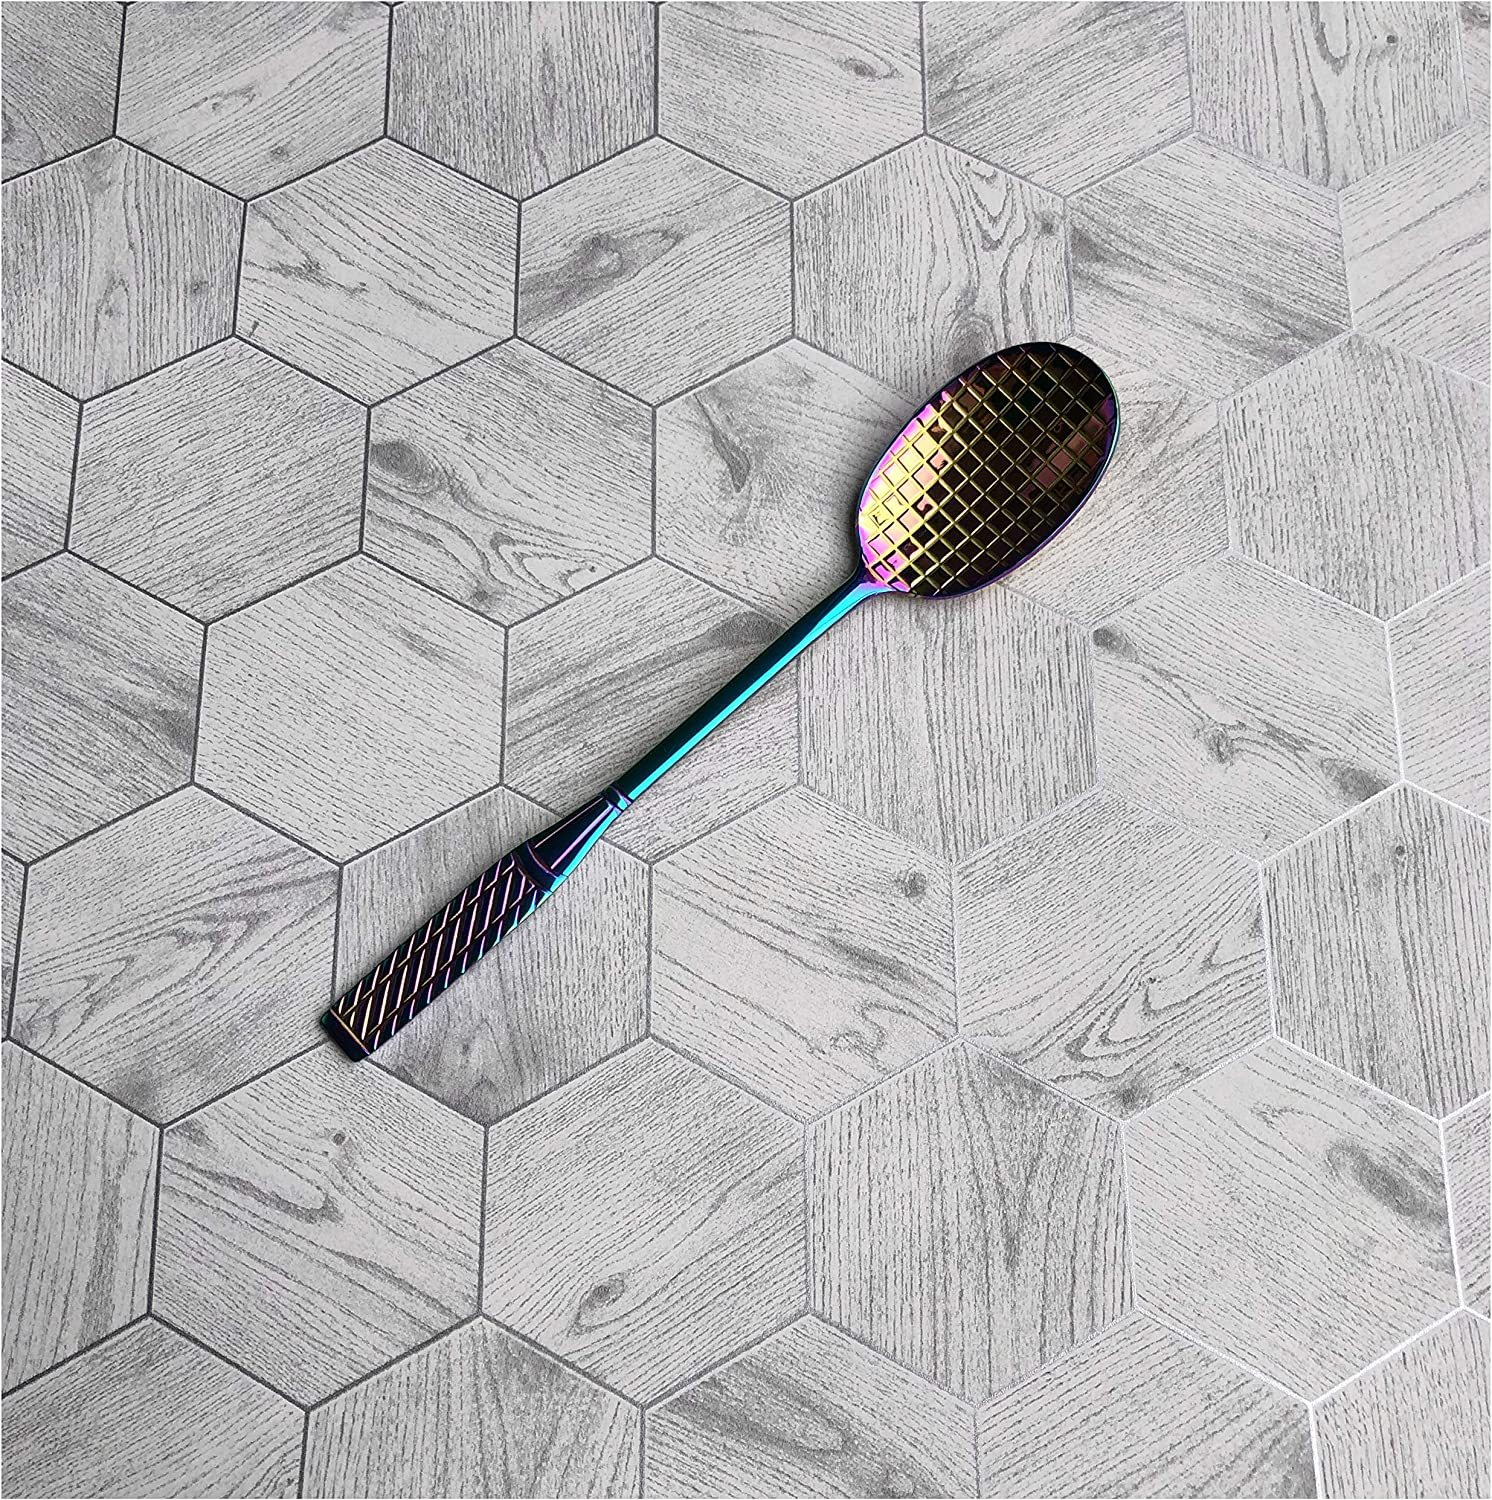 Iridescent Stainless Steel Tennis Racket Spoons Ball Sports Collectible Gift